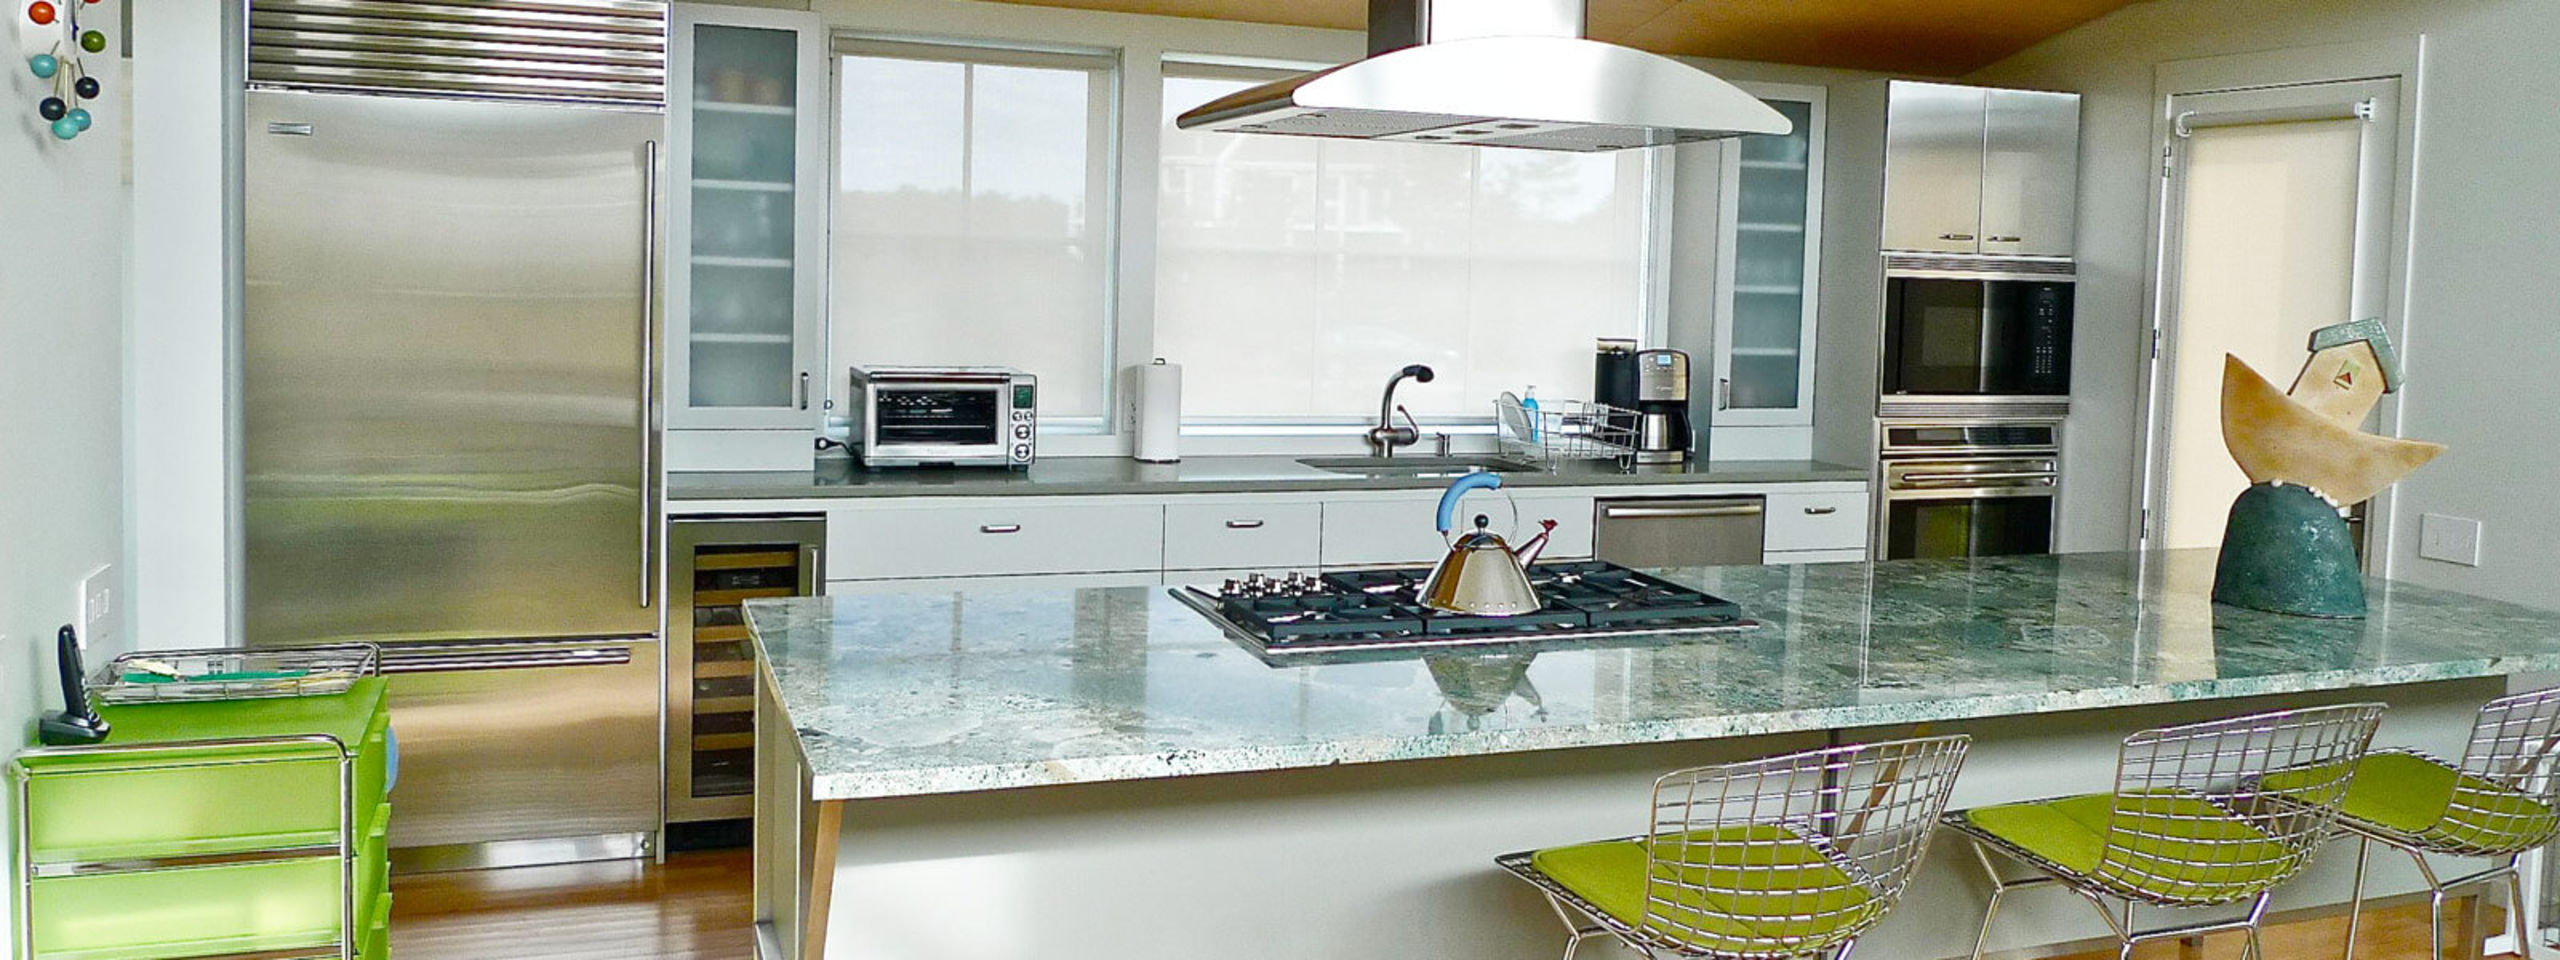 Curious About Kitchen Trends?